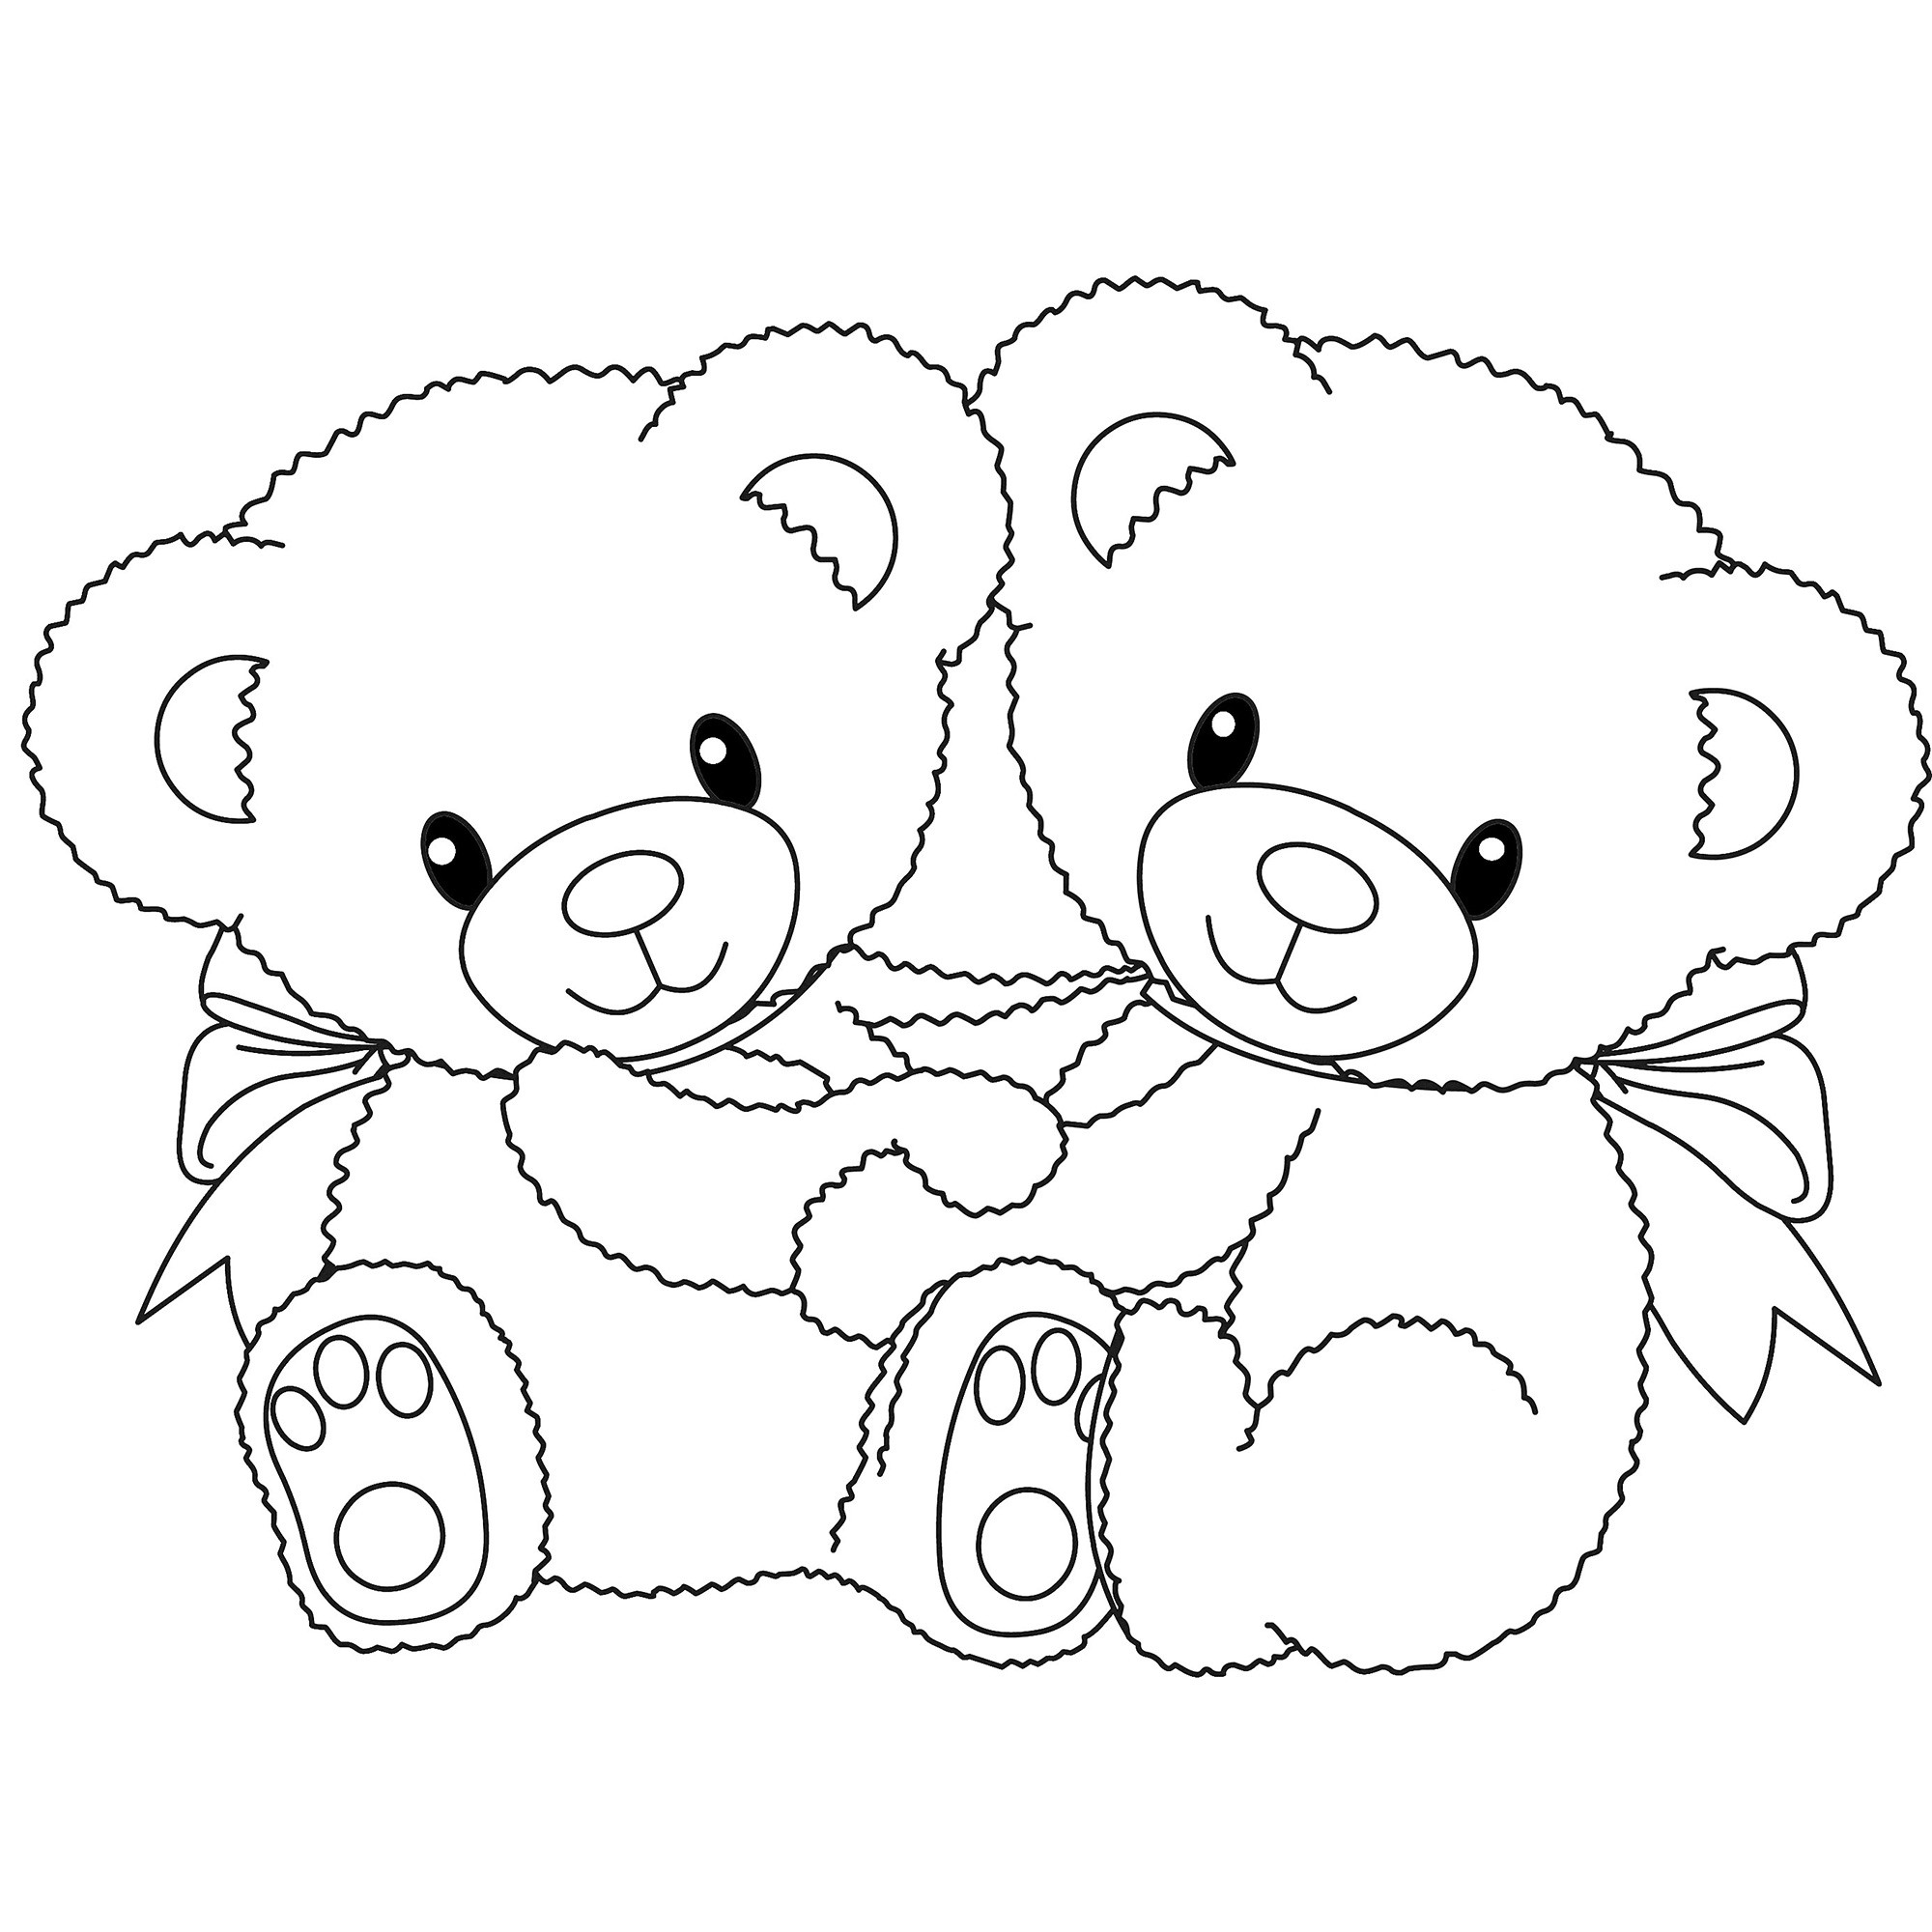 2000x2000 Cute Baby Pooh Bear Coloring Pages Free Draw To Color